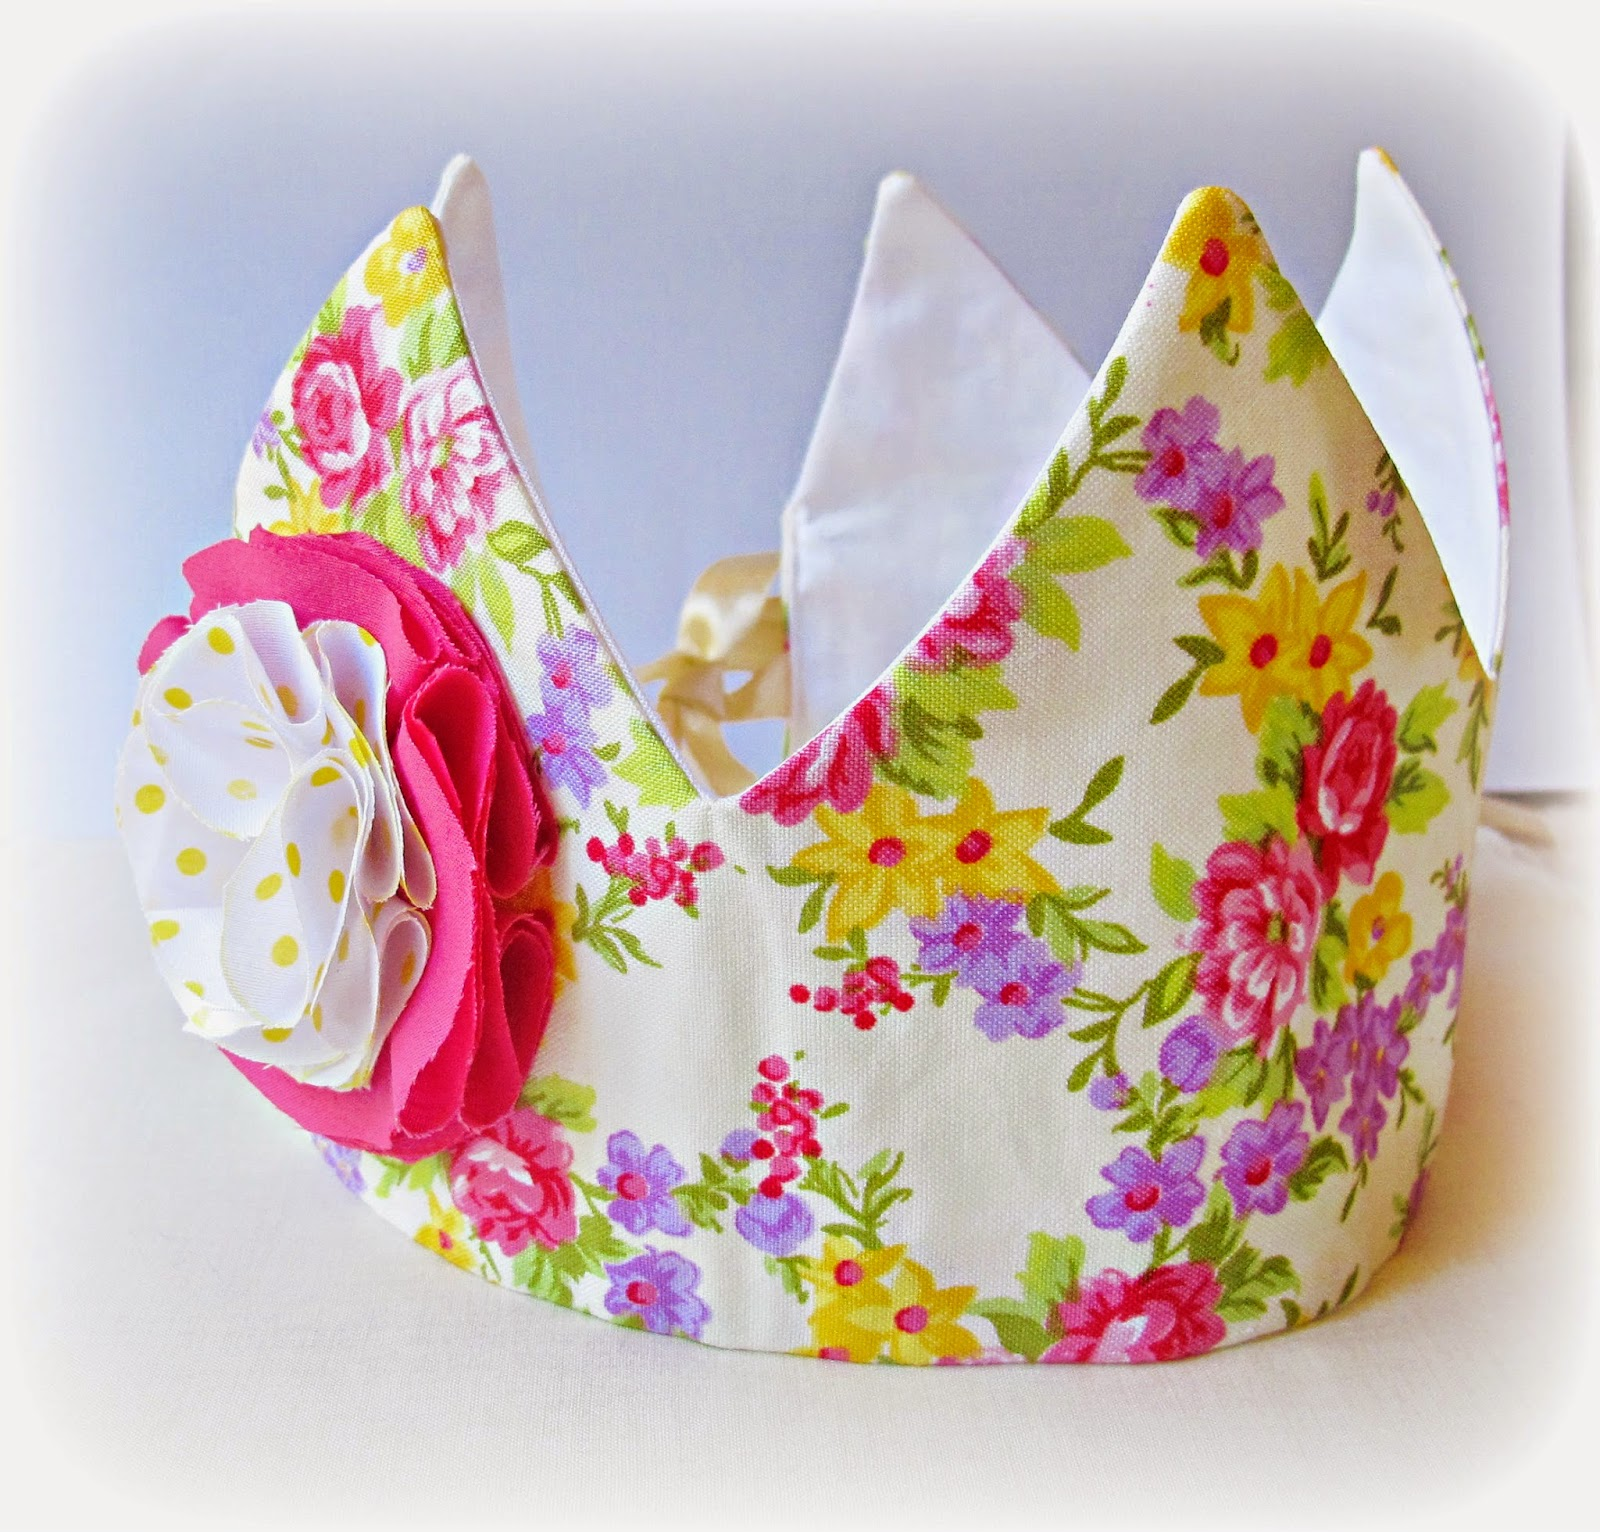 image diy tutorial fabric crown sew princess prince